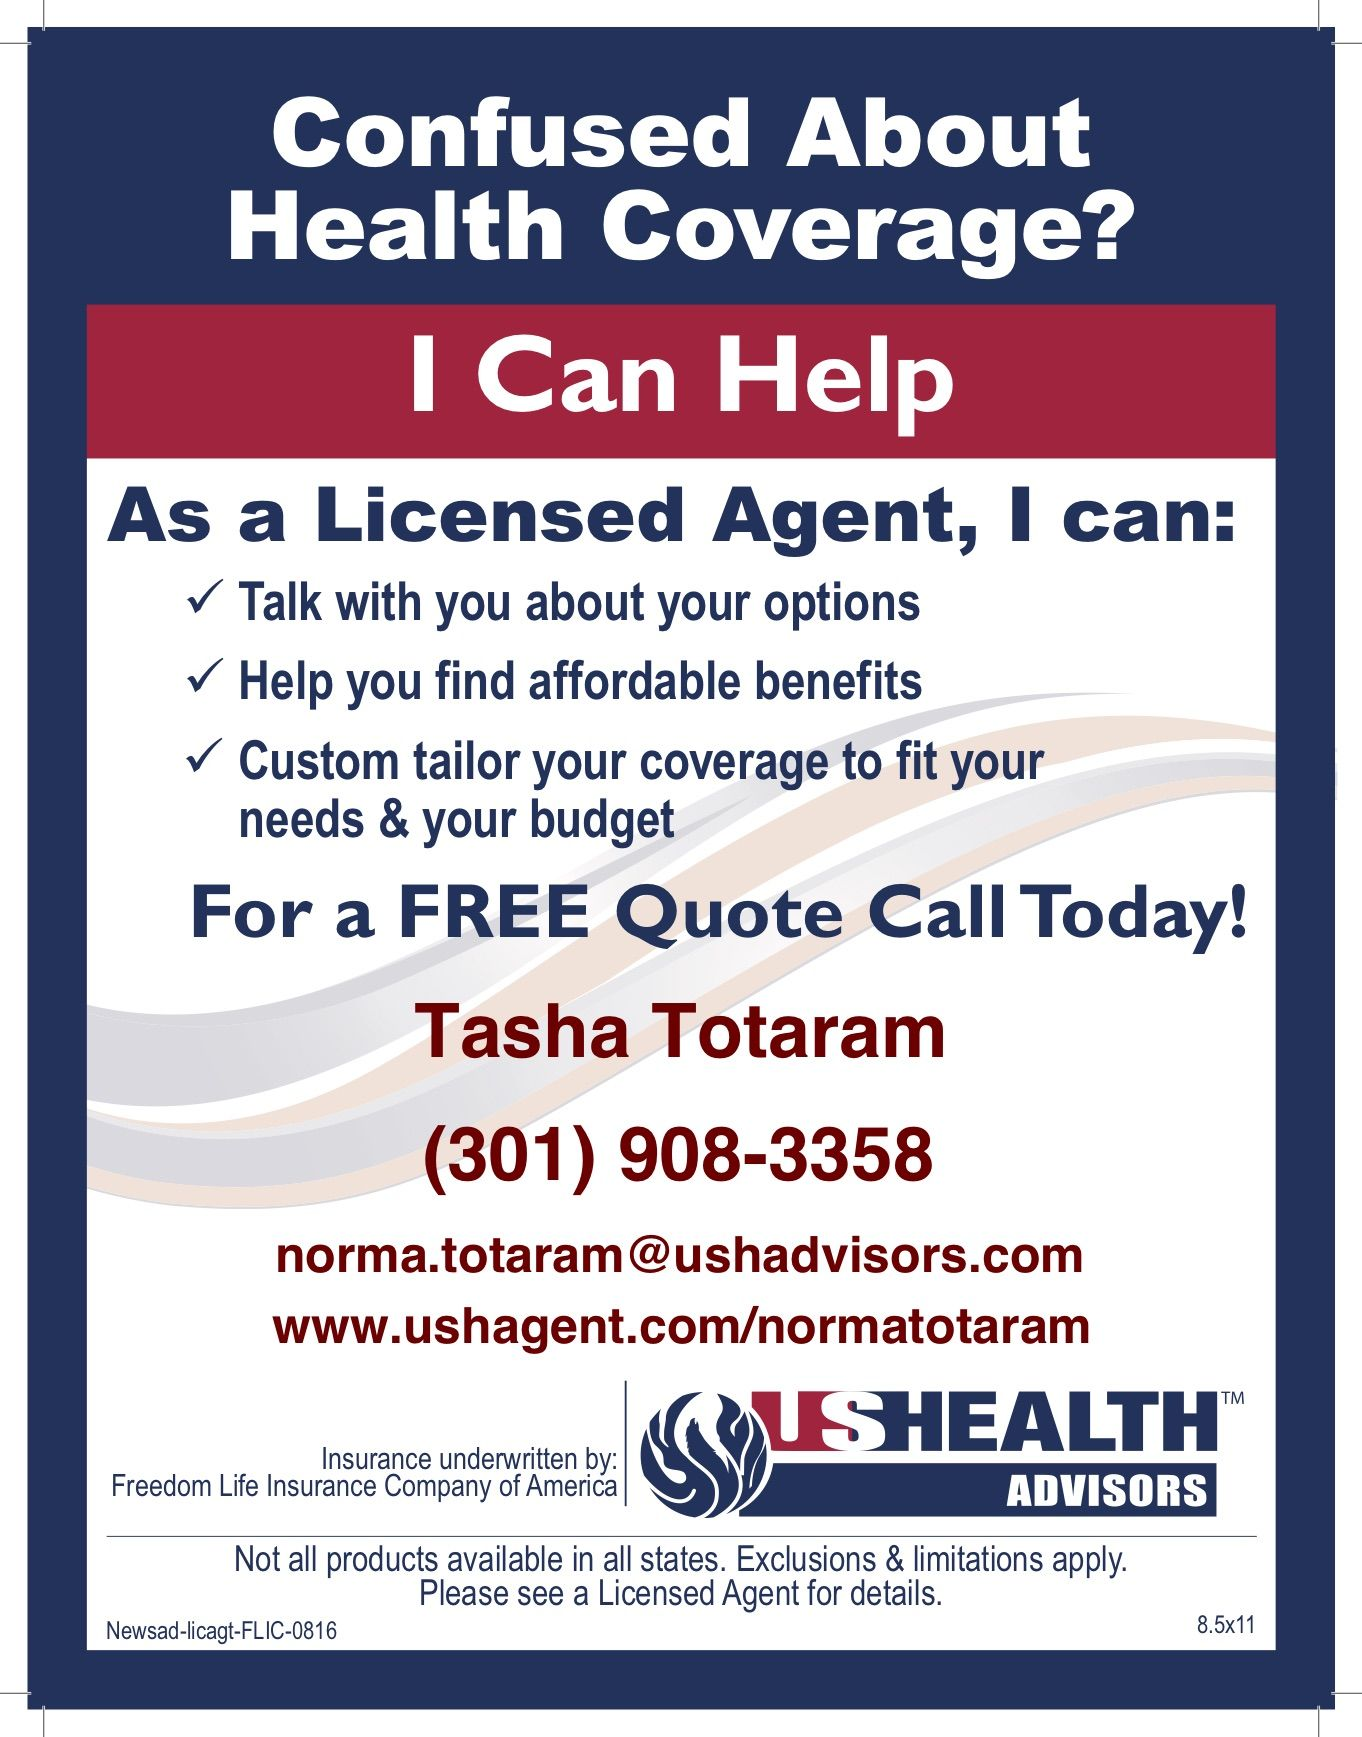 Know someone I can help with health coverage? Send them my